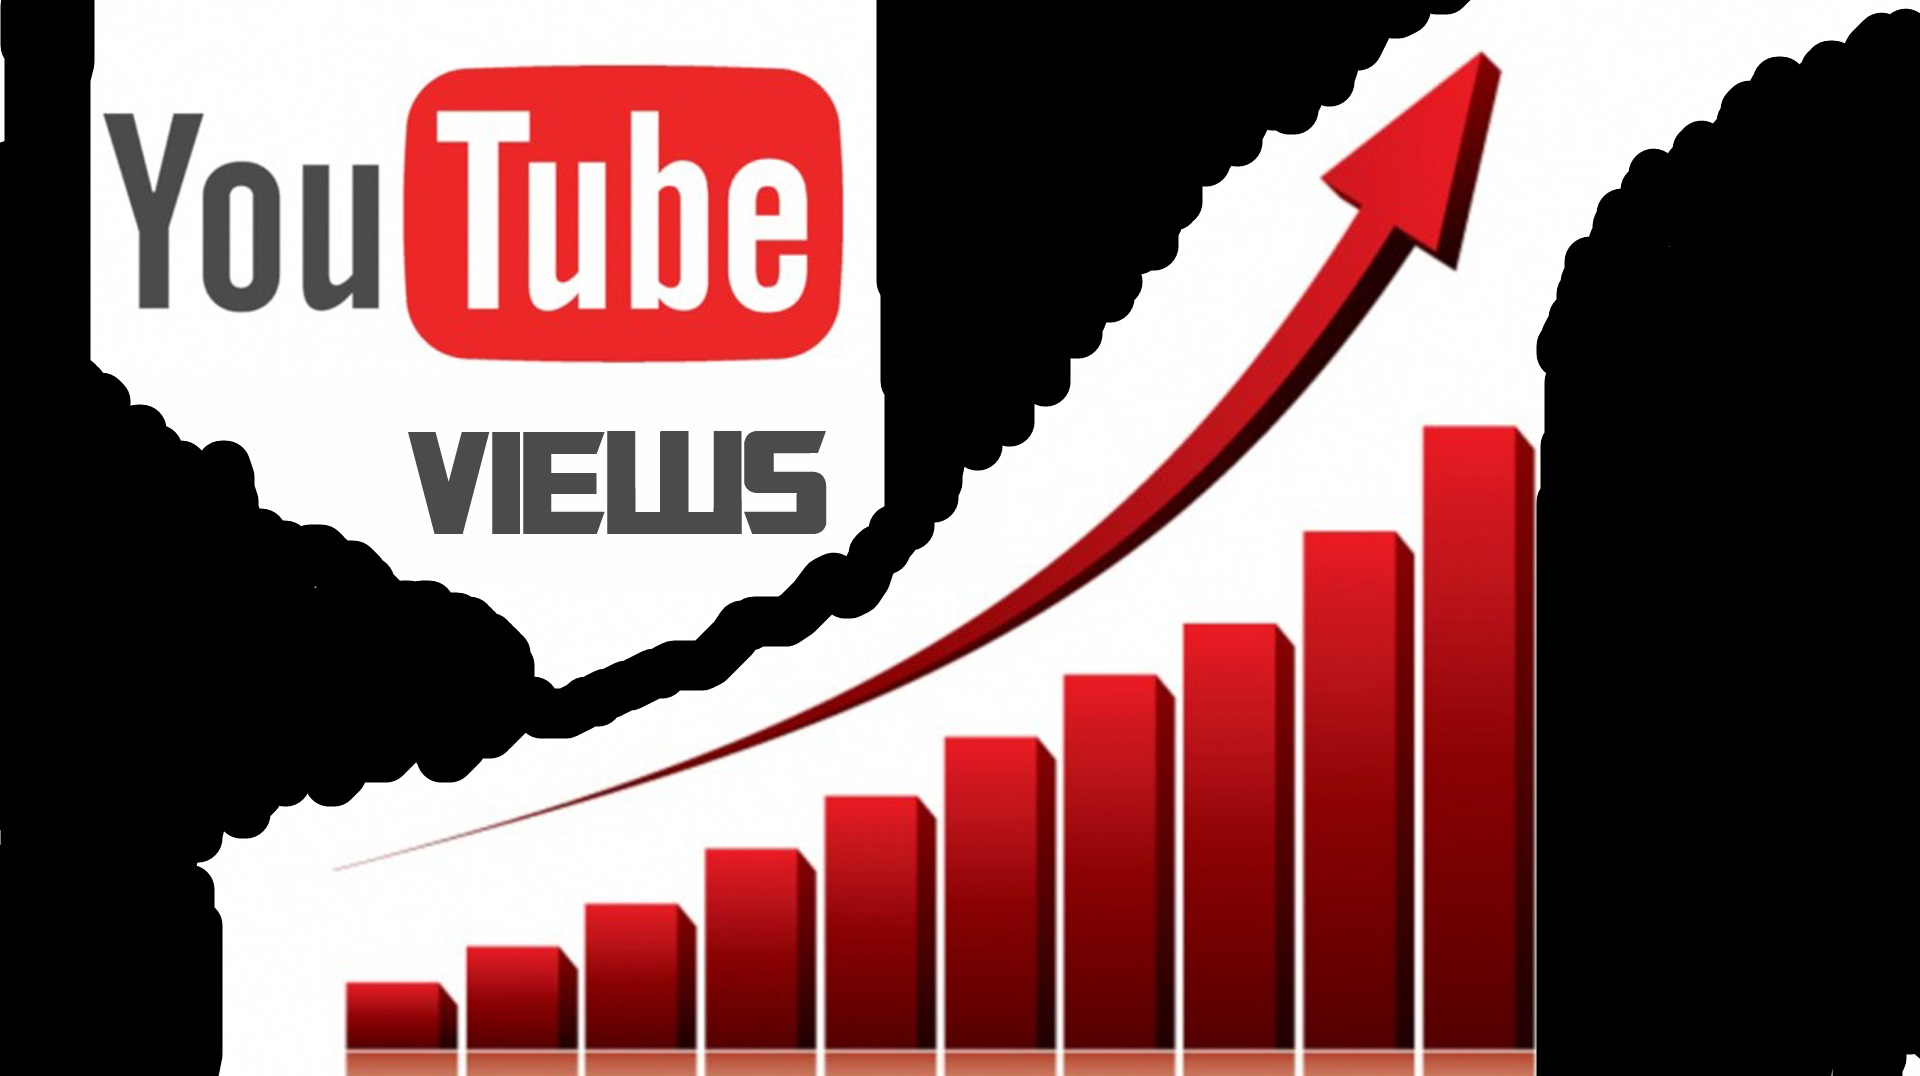 5000 youtube Views with 4min watch time per video (300 - 400 watch hours)